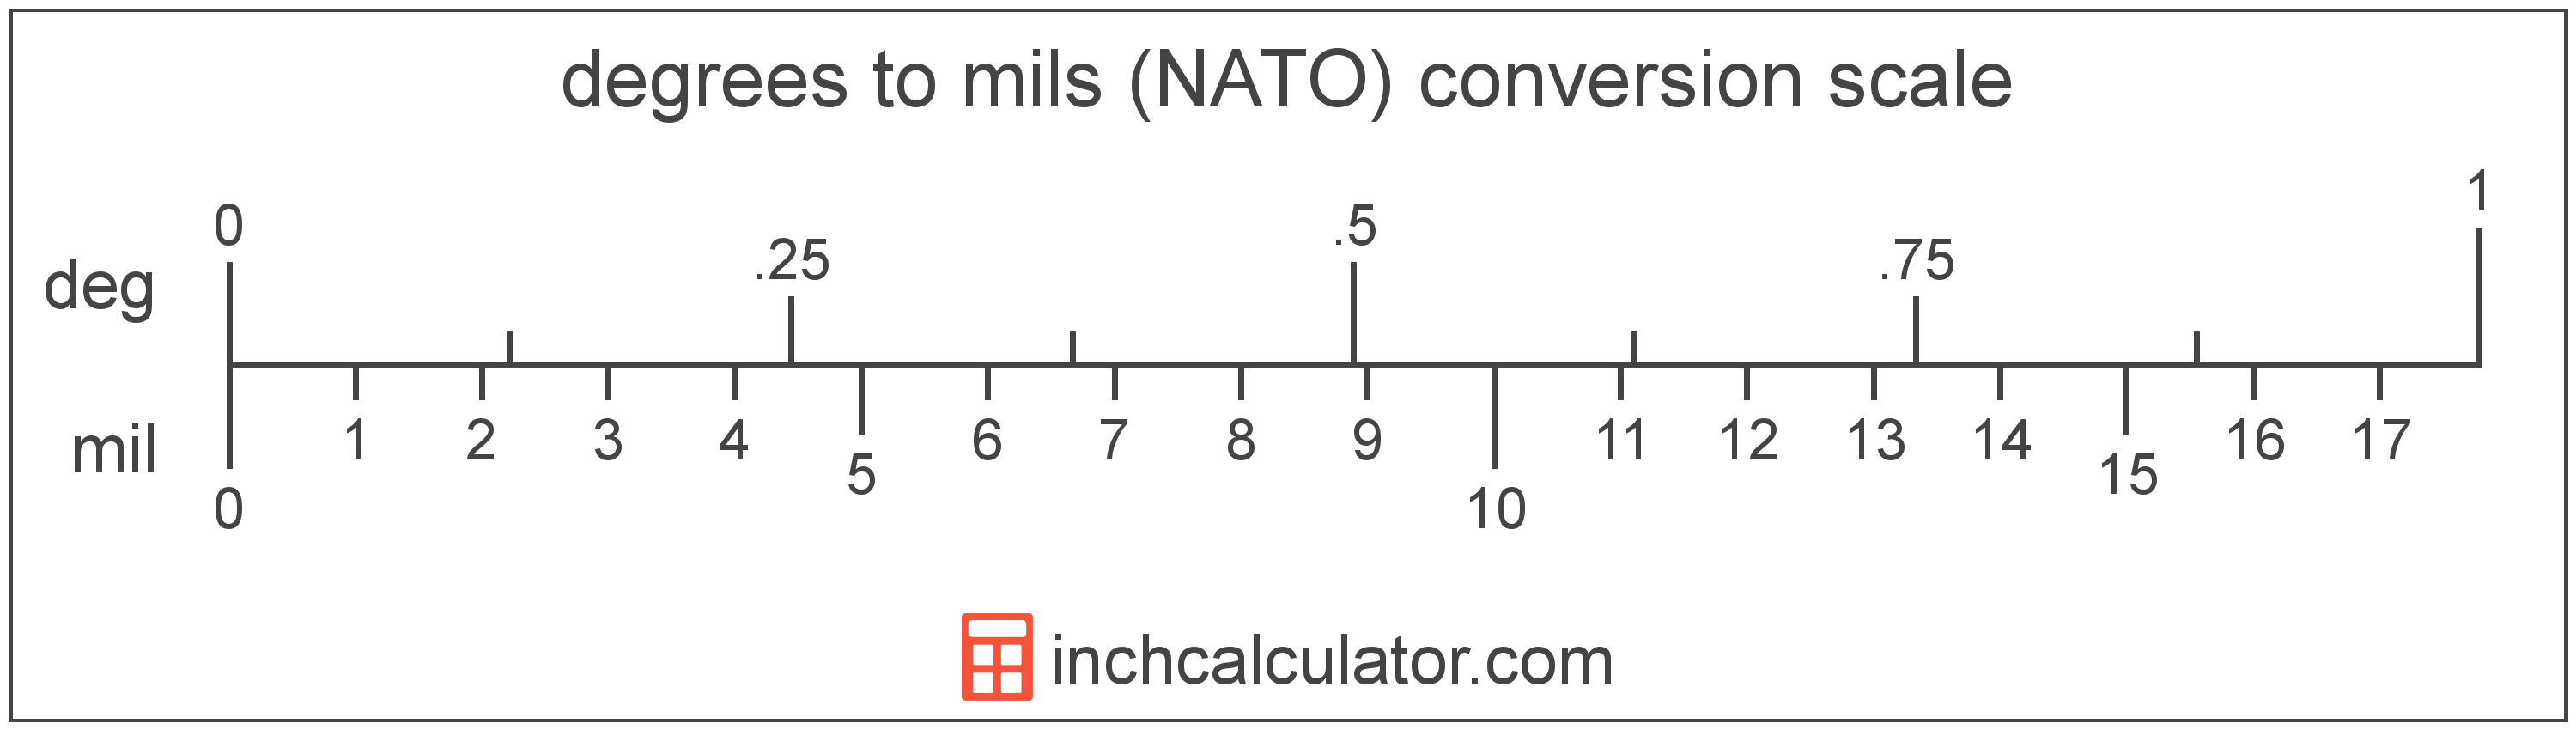 conversion scale showing degrees and equivalent mils (NATO) angle values